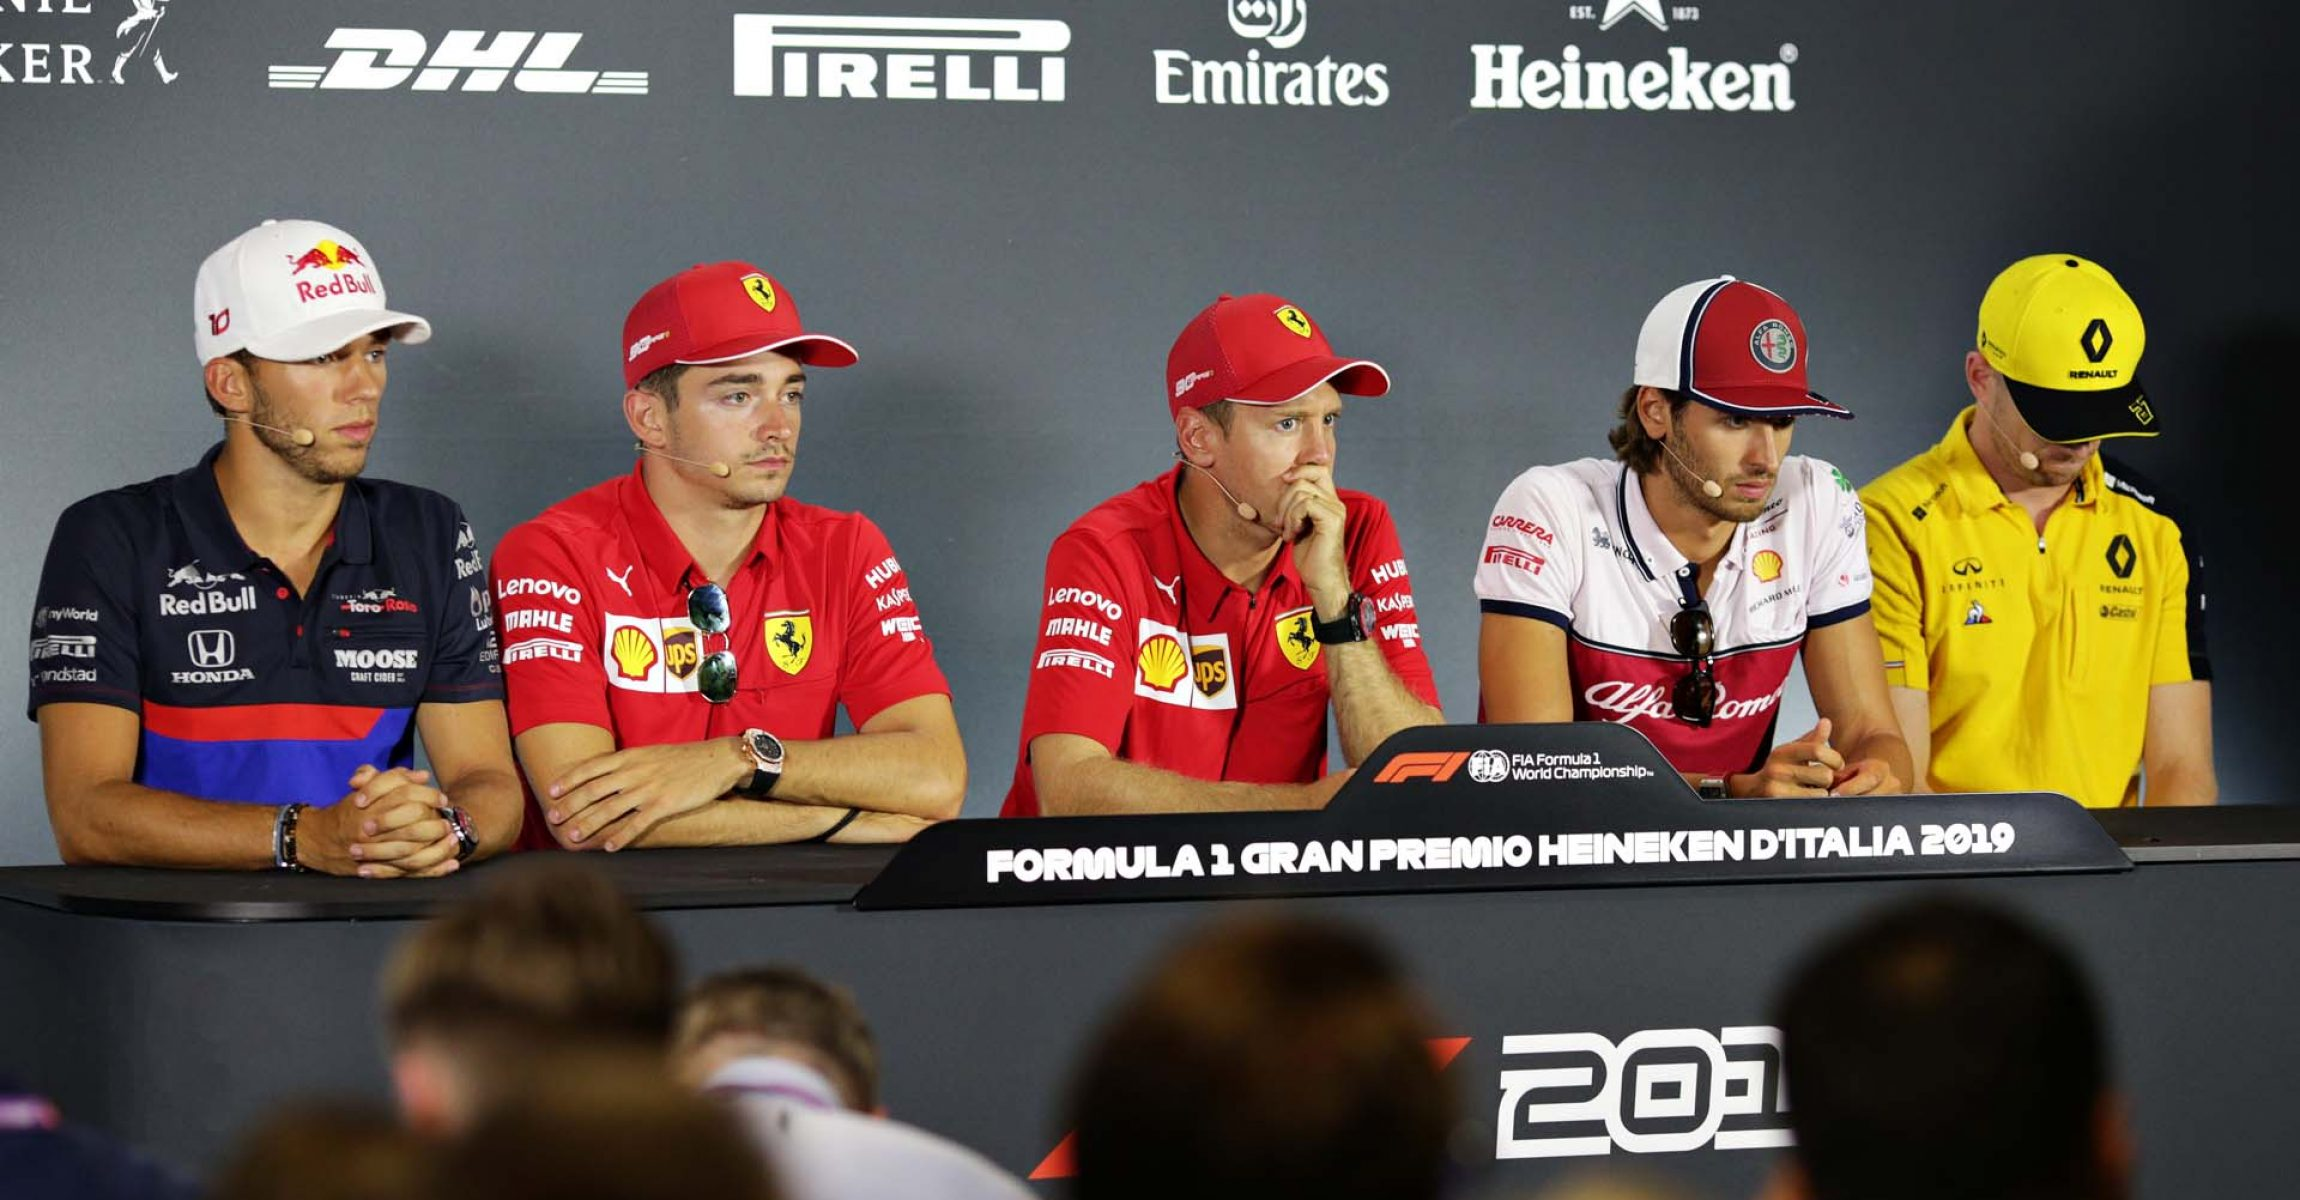 MONZA, ITALY - SEPTEMBER 05: A general view of the Drivers Press Conference with Pierre Gasly of France and Scuderia Toro Rosso, Charles Leclerc of Monaco and Ferrari, Sebastian Vettel of Germany and Ferrari, Antonio Giovinazzi of Italy and Alfa Romeo Racing and Nico Hulkenberg of Germany and Renault Sport F1 during previews ahead of the F1 Grand Prix of Italy at Autodromo di Monza on September 05, 2019 in Monza, Italy. (Photo by Peter Fox/Getty Images) // Getty Images / Red Bull Content Pool  // AP-21FUBQE4H1W11 // Usage for editorial use only //